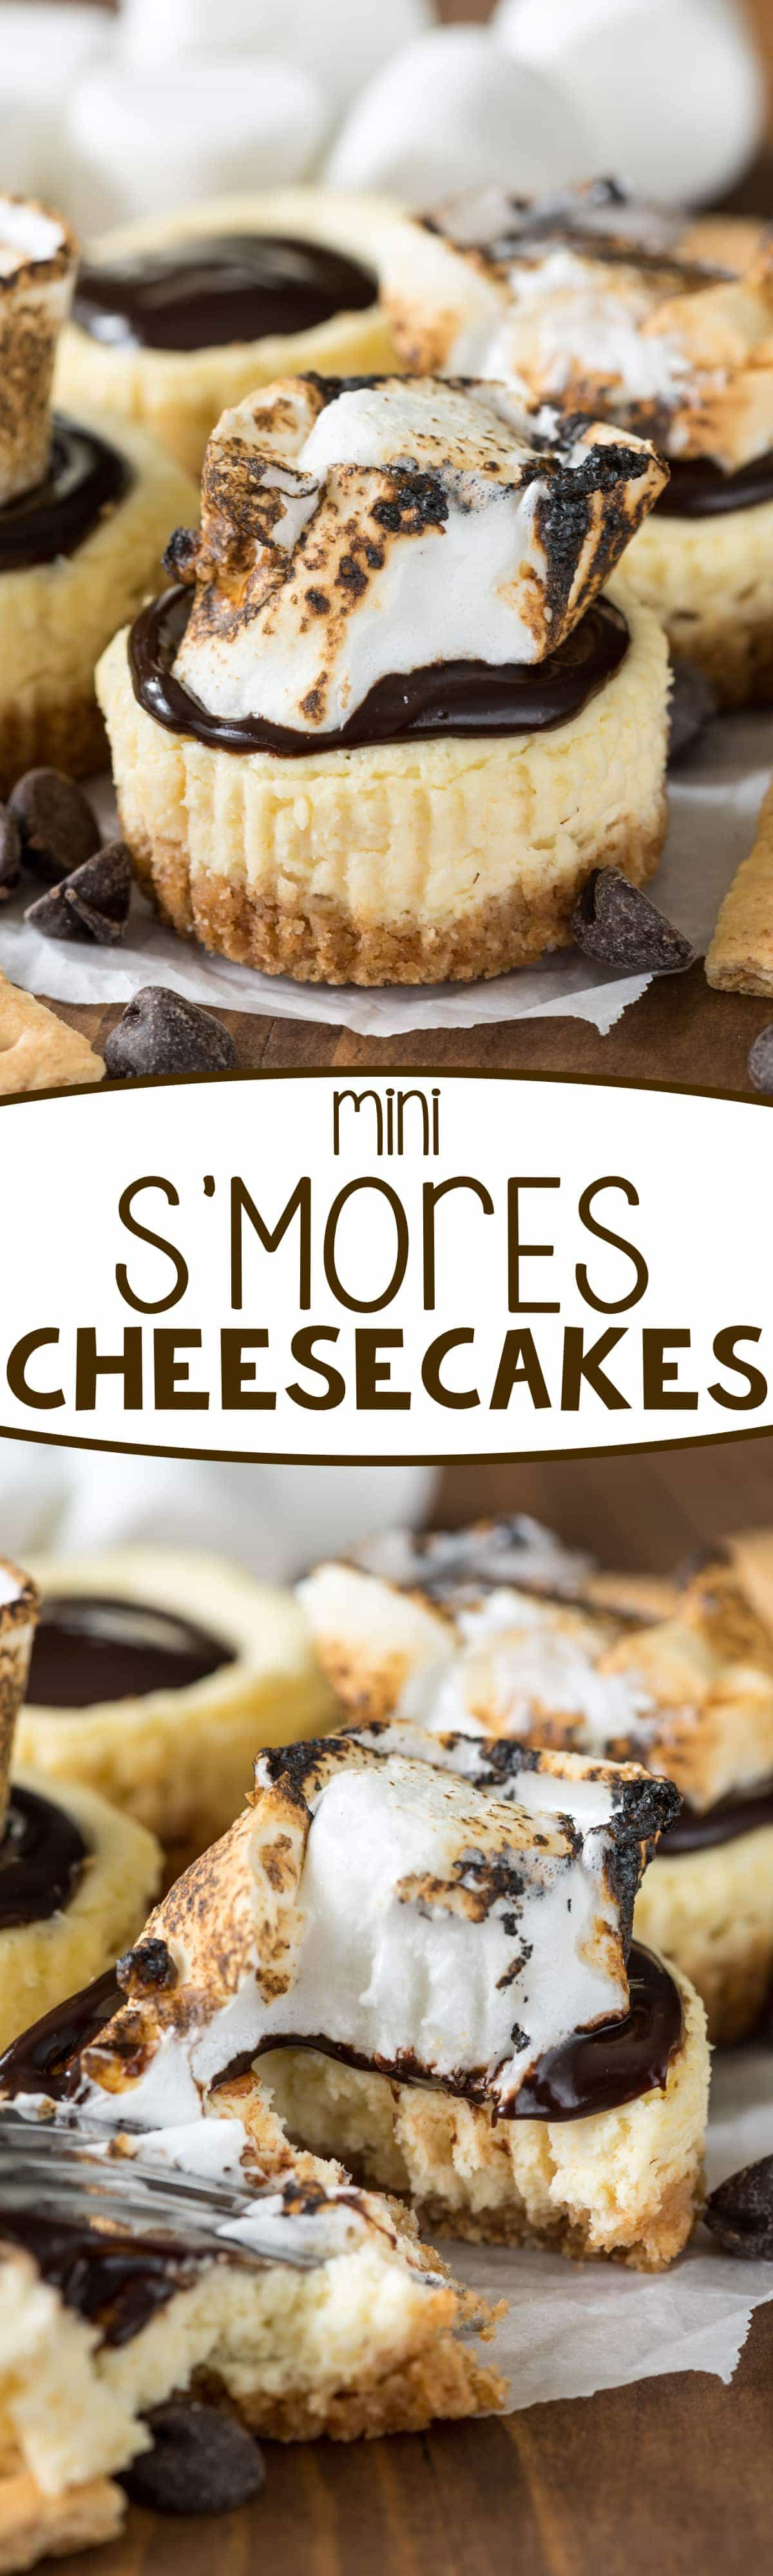 Mini S'mores Cheesecakes - this easy cheesecake recipe makes the perfect 12 mini cheesecakes! Top them with chocolate and a toasted marshmallow for indoor s'mores!